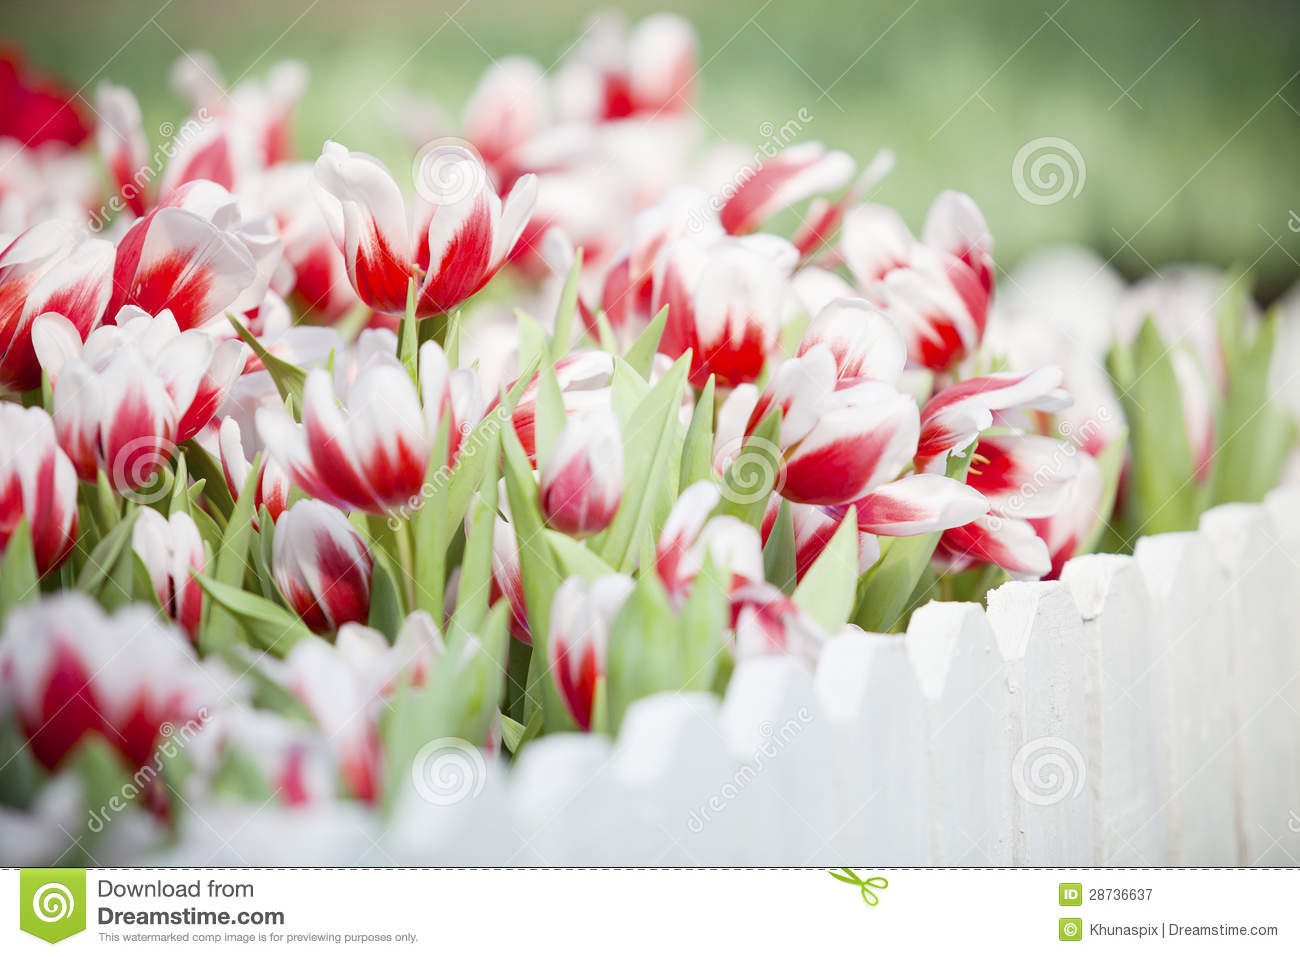 Group of white and red tulip flowers in the garden stock image download comp mightylinksfo